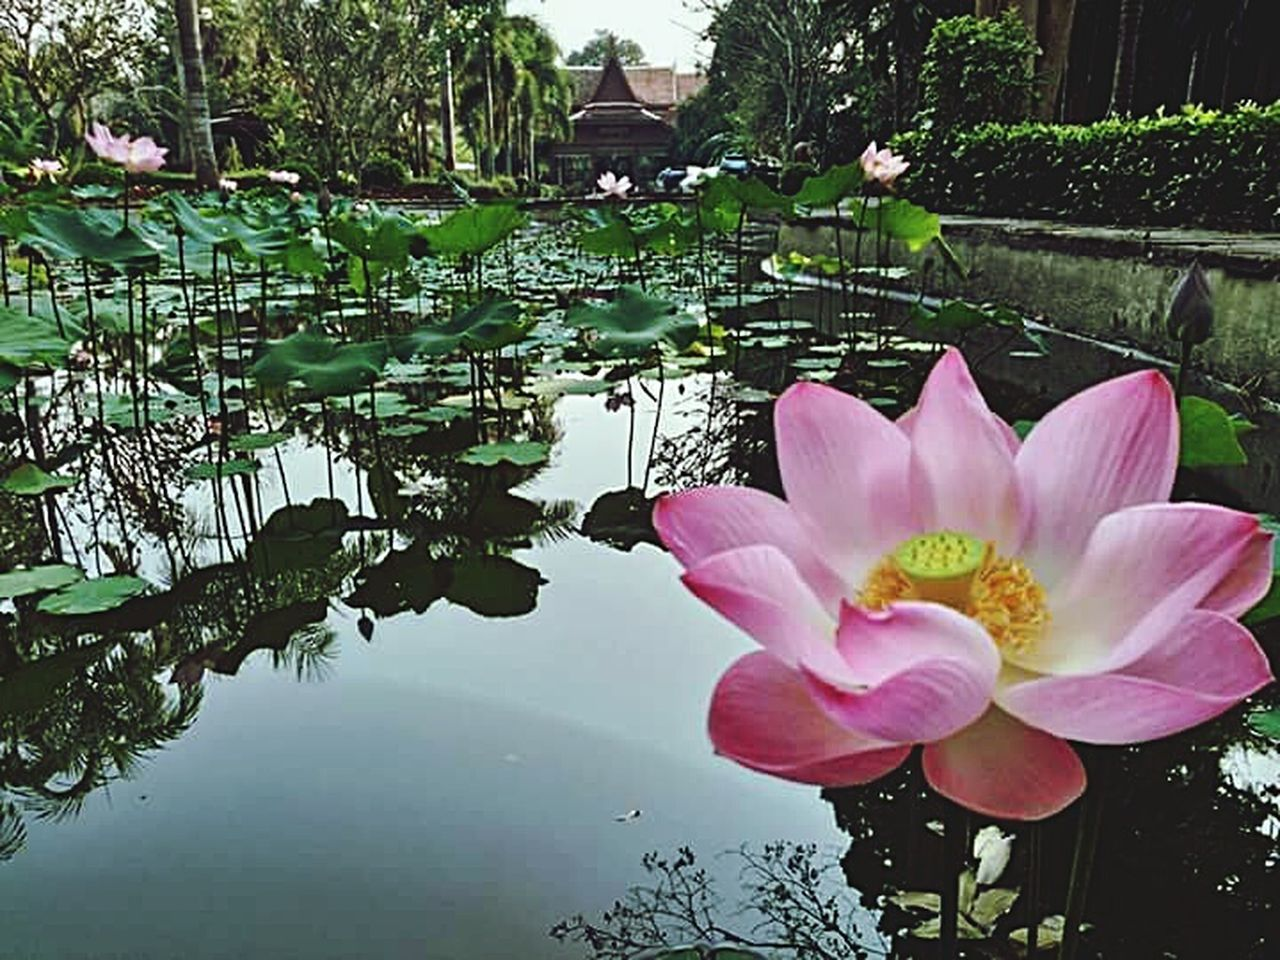 pond, flower, water lily, reflection, pink color, water, nature, beauty in nature, petal, plant, lotus water lily, leaf, floating on water, outdoors, flower head, no people, day, growth, lotus, fragility, freshness, lily pad, tree, close-up